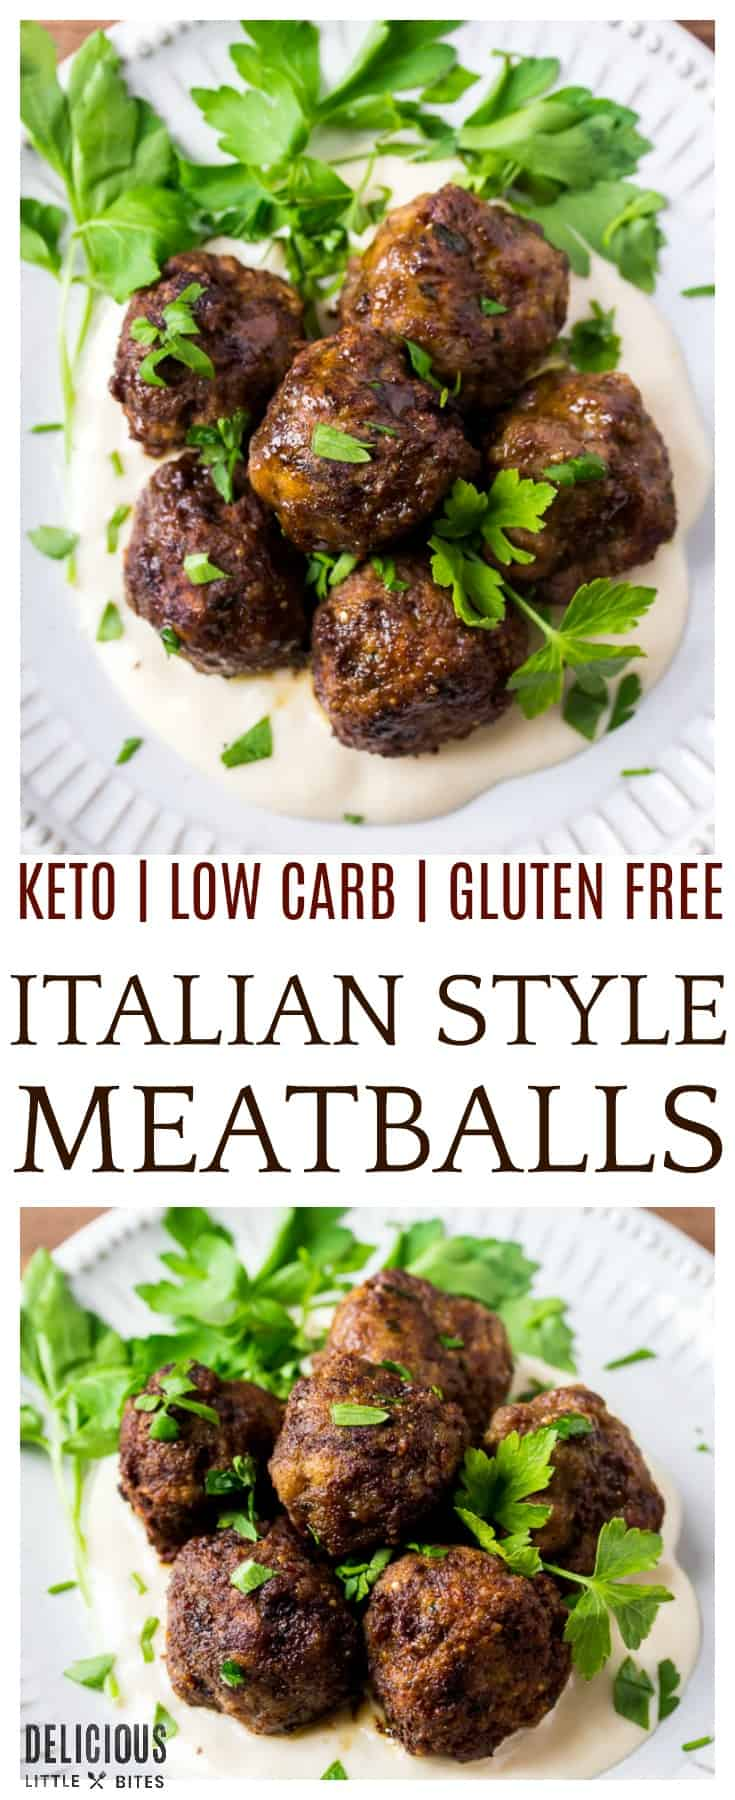 Keto Italian Meatballs - made with ground beef and the same flavors as traditional Italian meatballs, but uses almond flour instead of breadcrumbs so they are gluten free, low carb, and keto friendly. This easy recipe can be baked or fried! These meatballs can be made ahead of time and frozen for later use. | #keto #lowcarb #dlbrecipes #easyrecipe #meatballs